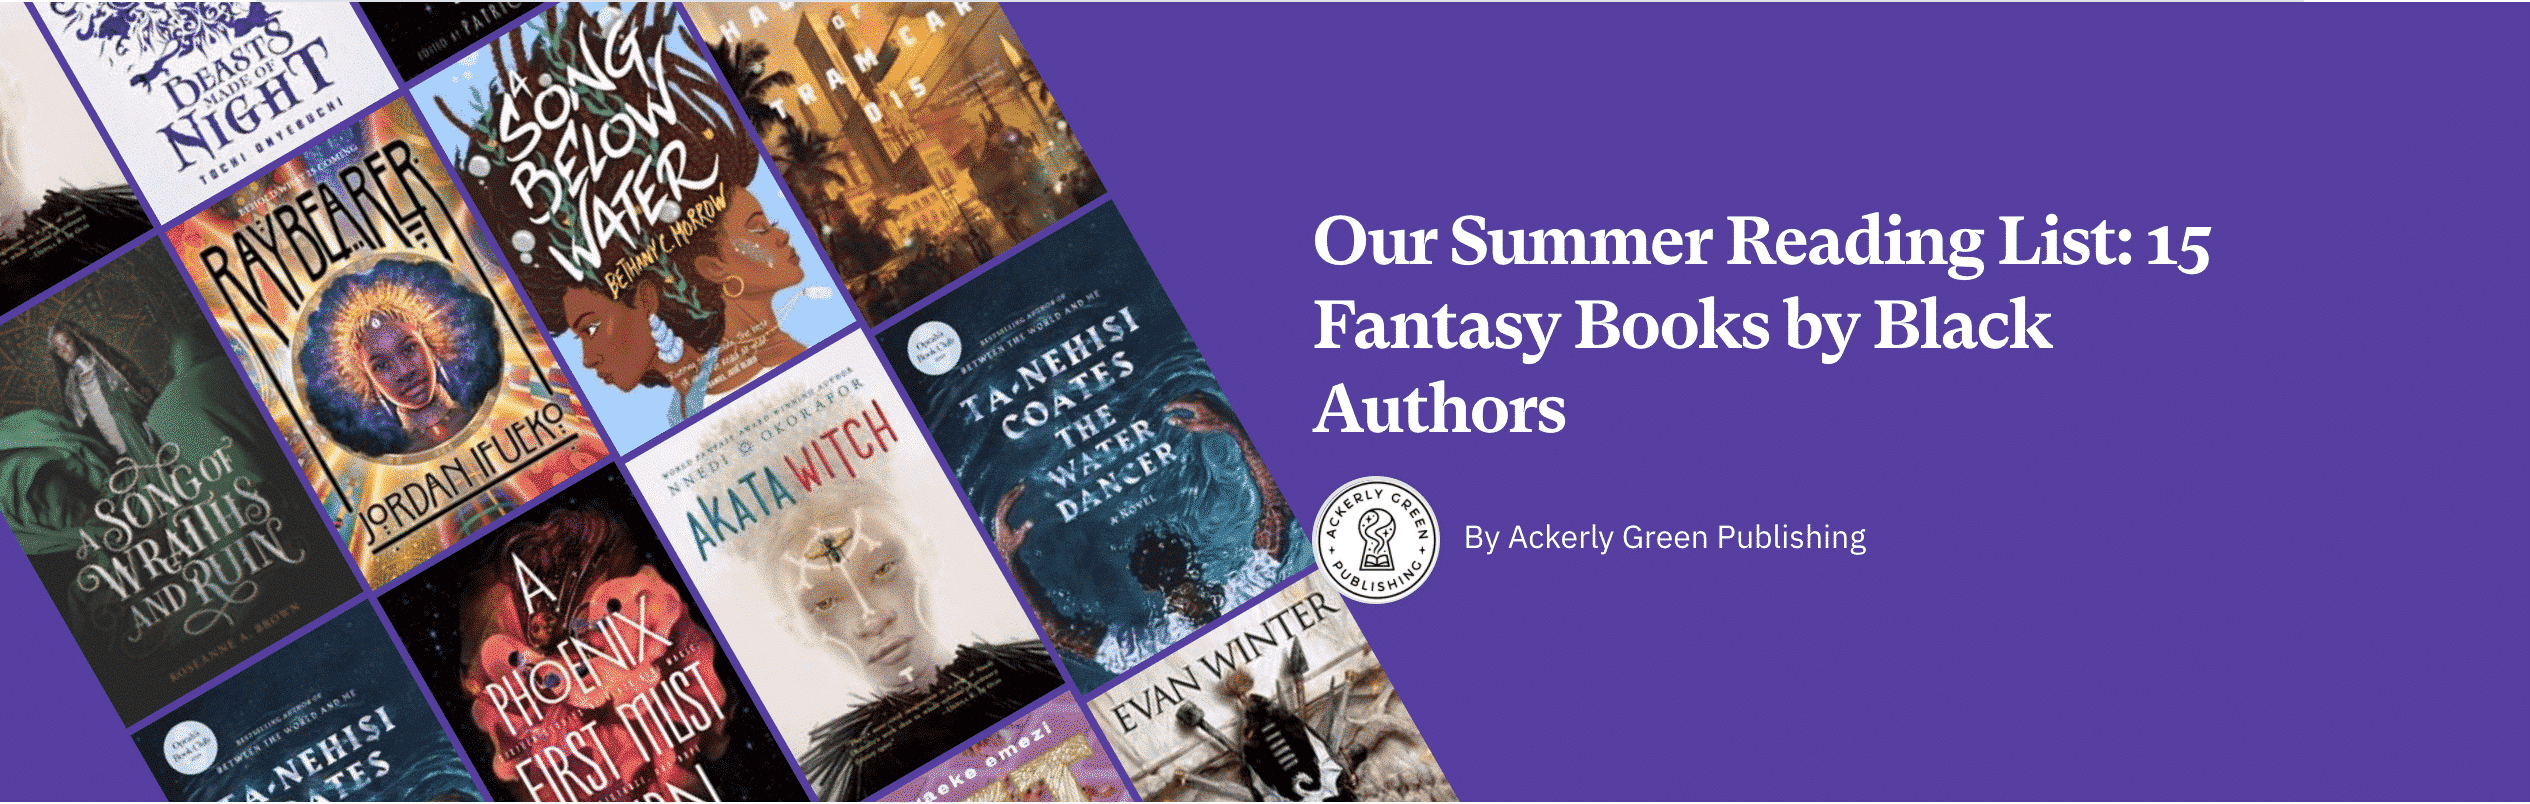 Our Summer Reading List: 15 Fantasy Books by Black Authors